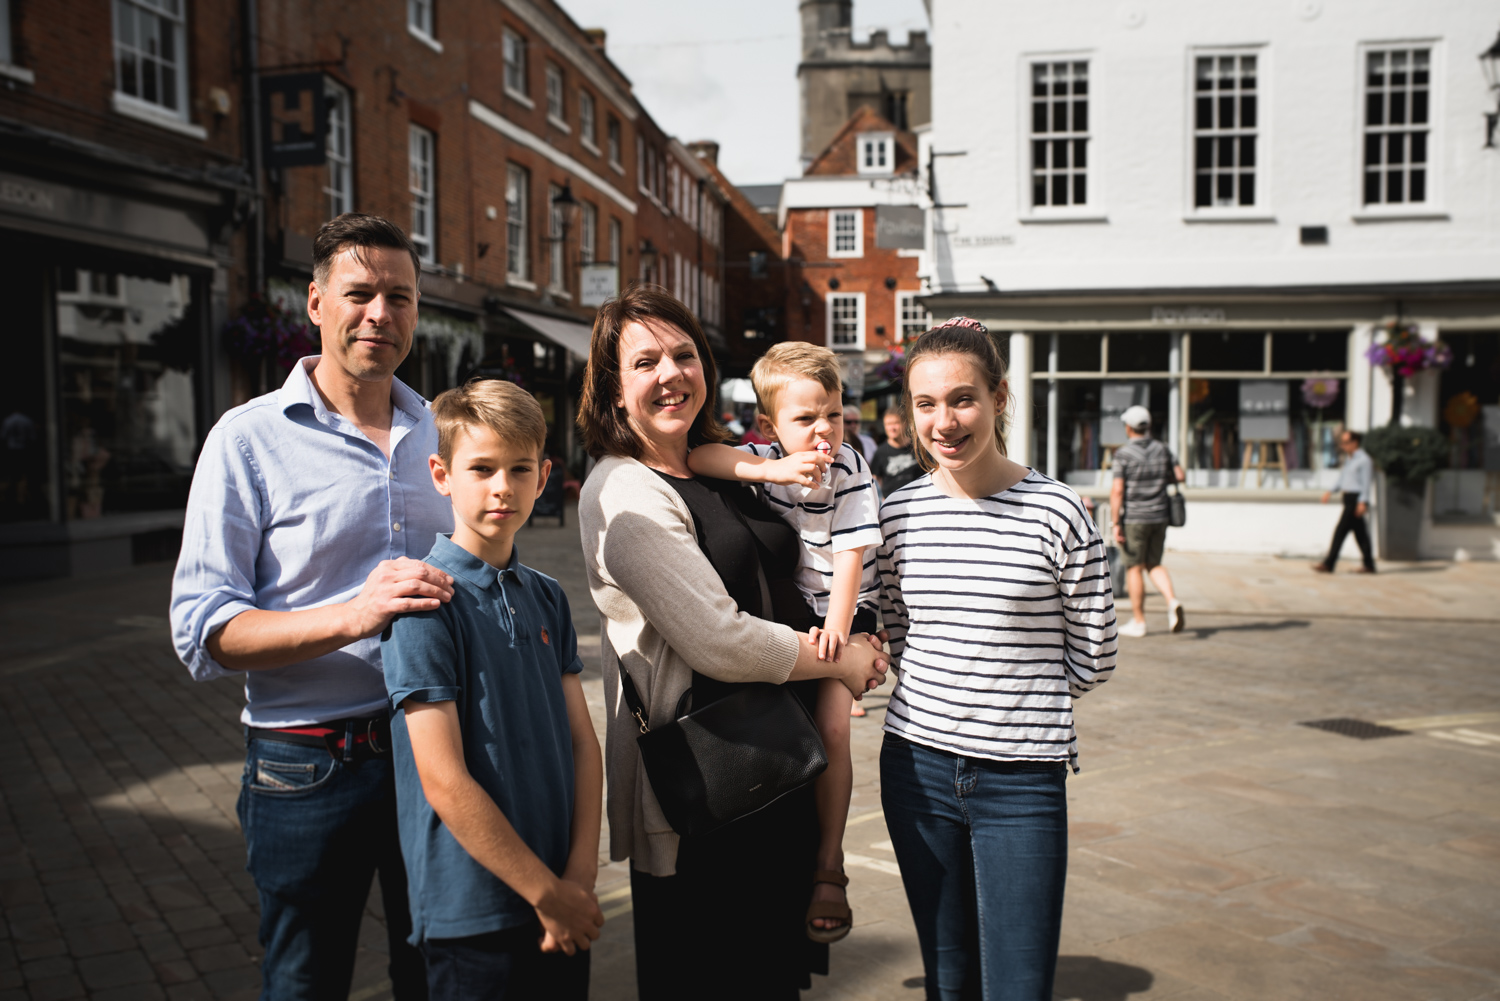 Winchester Hampshire Family Photoshoot with Older and Younger Children by Photographer Evie Winter